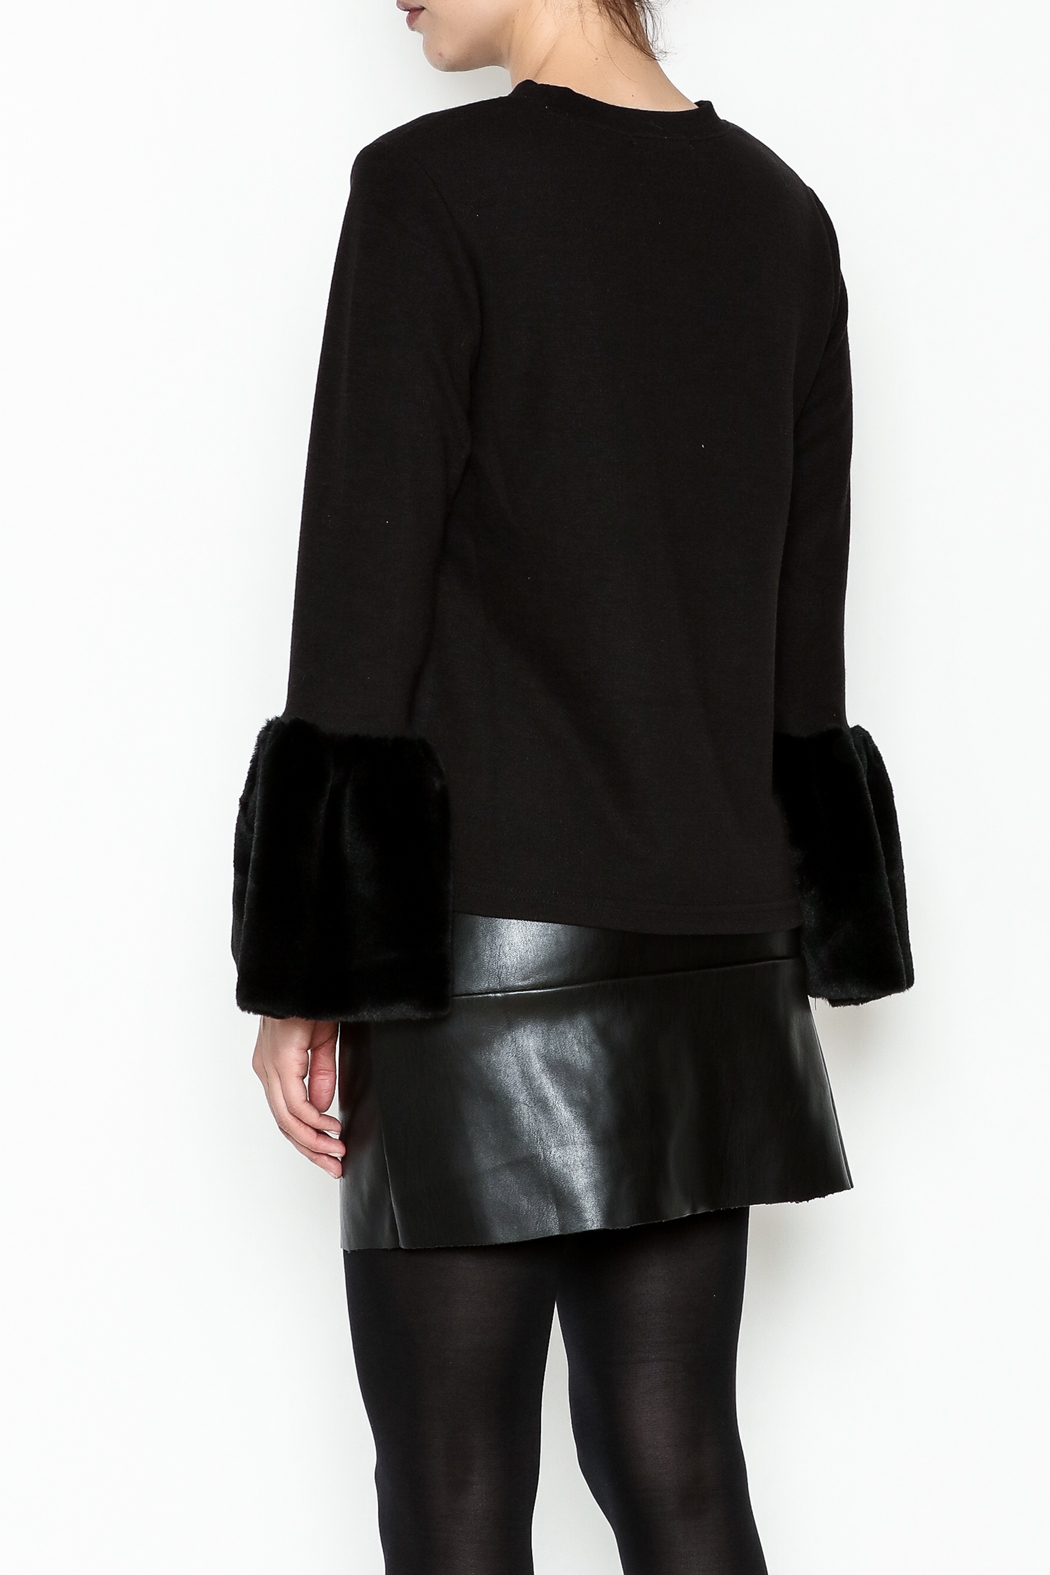 beulah Fur Sleeve Top - Back Cropped Image